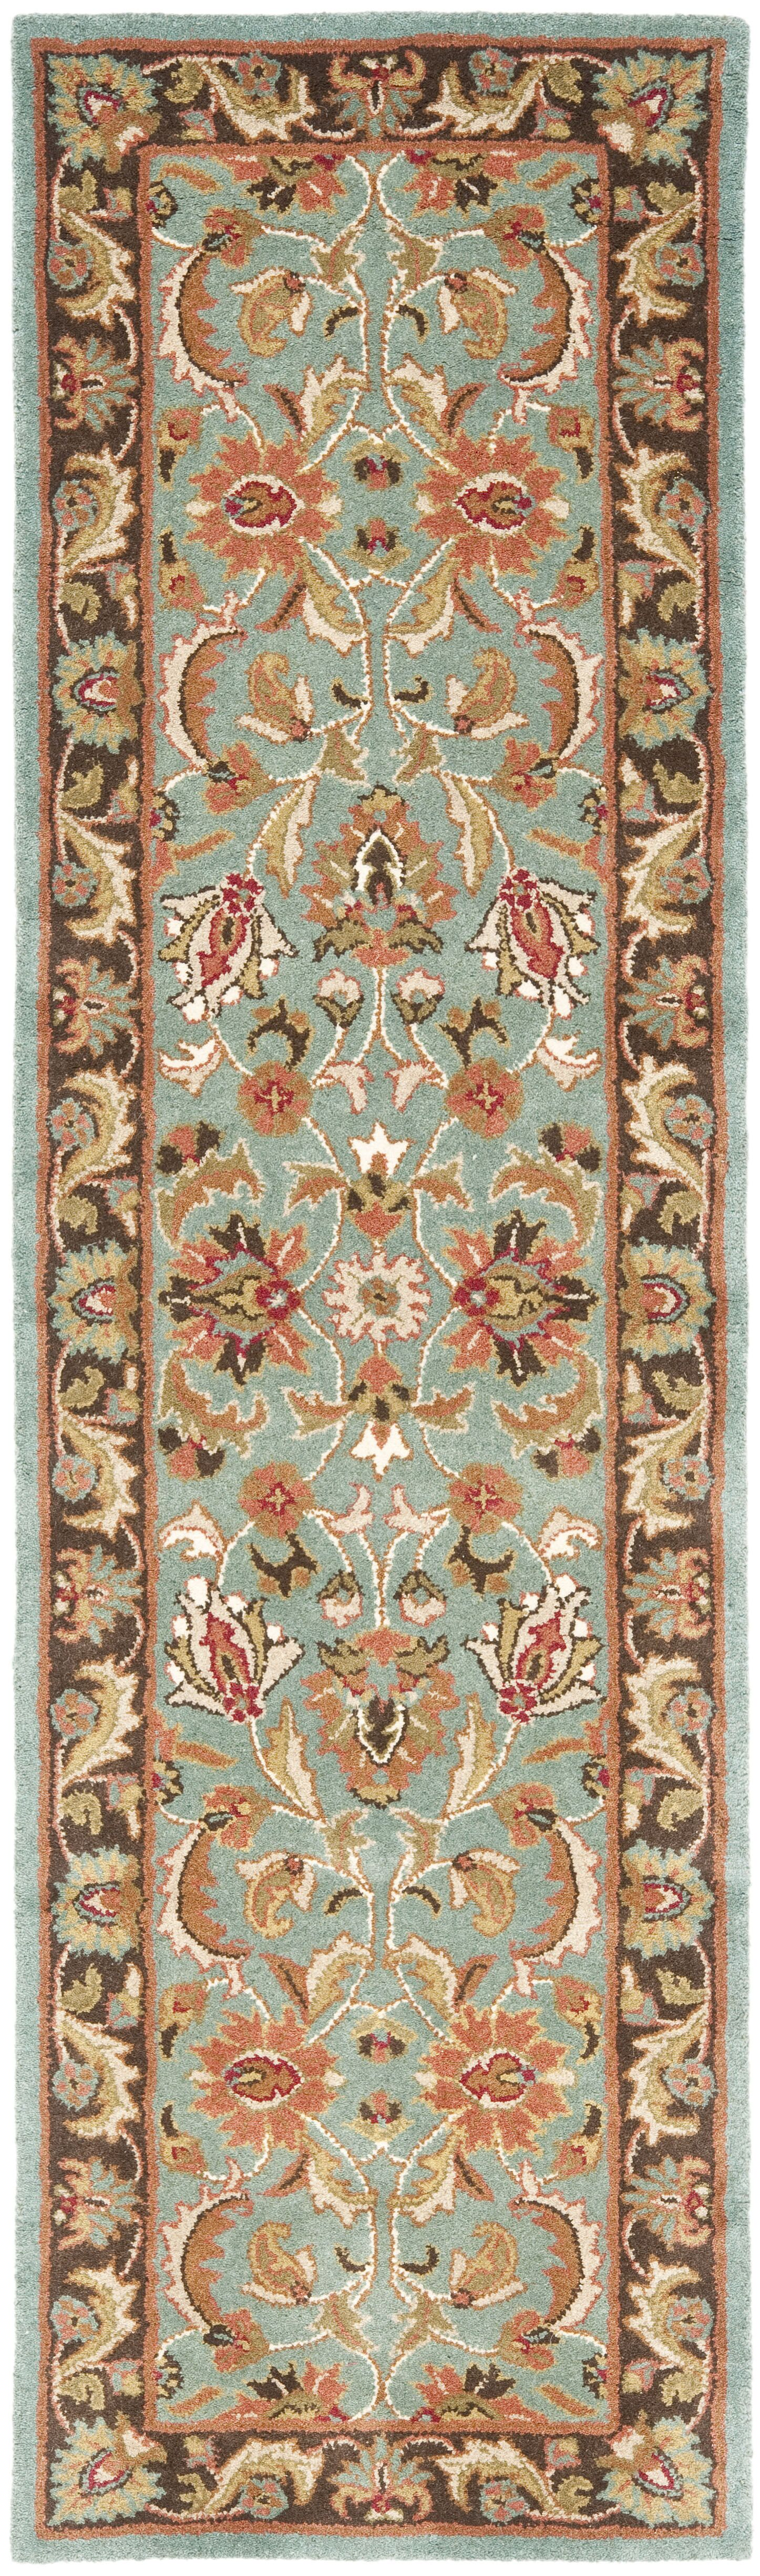 Cranmore Hand-Tufted Blue/Brown Area Rug Rug Size: Runner 2'3